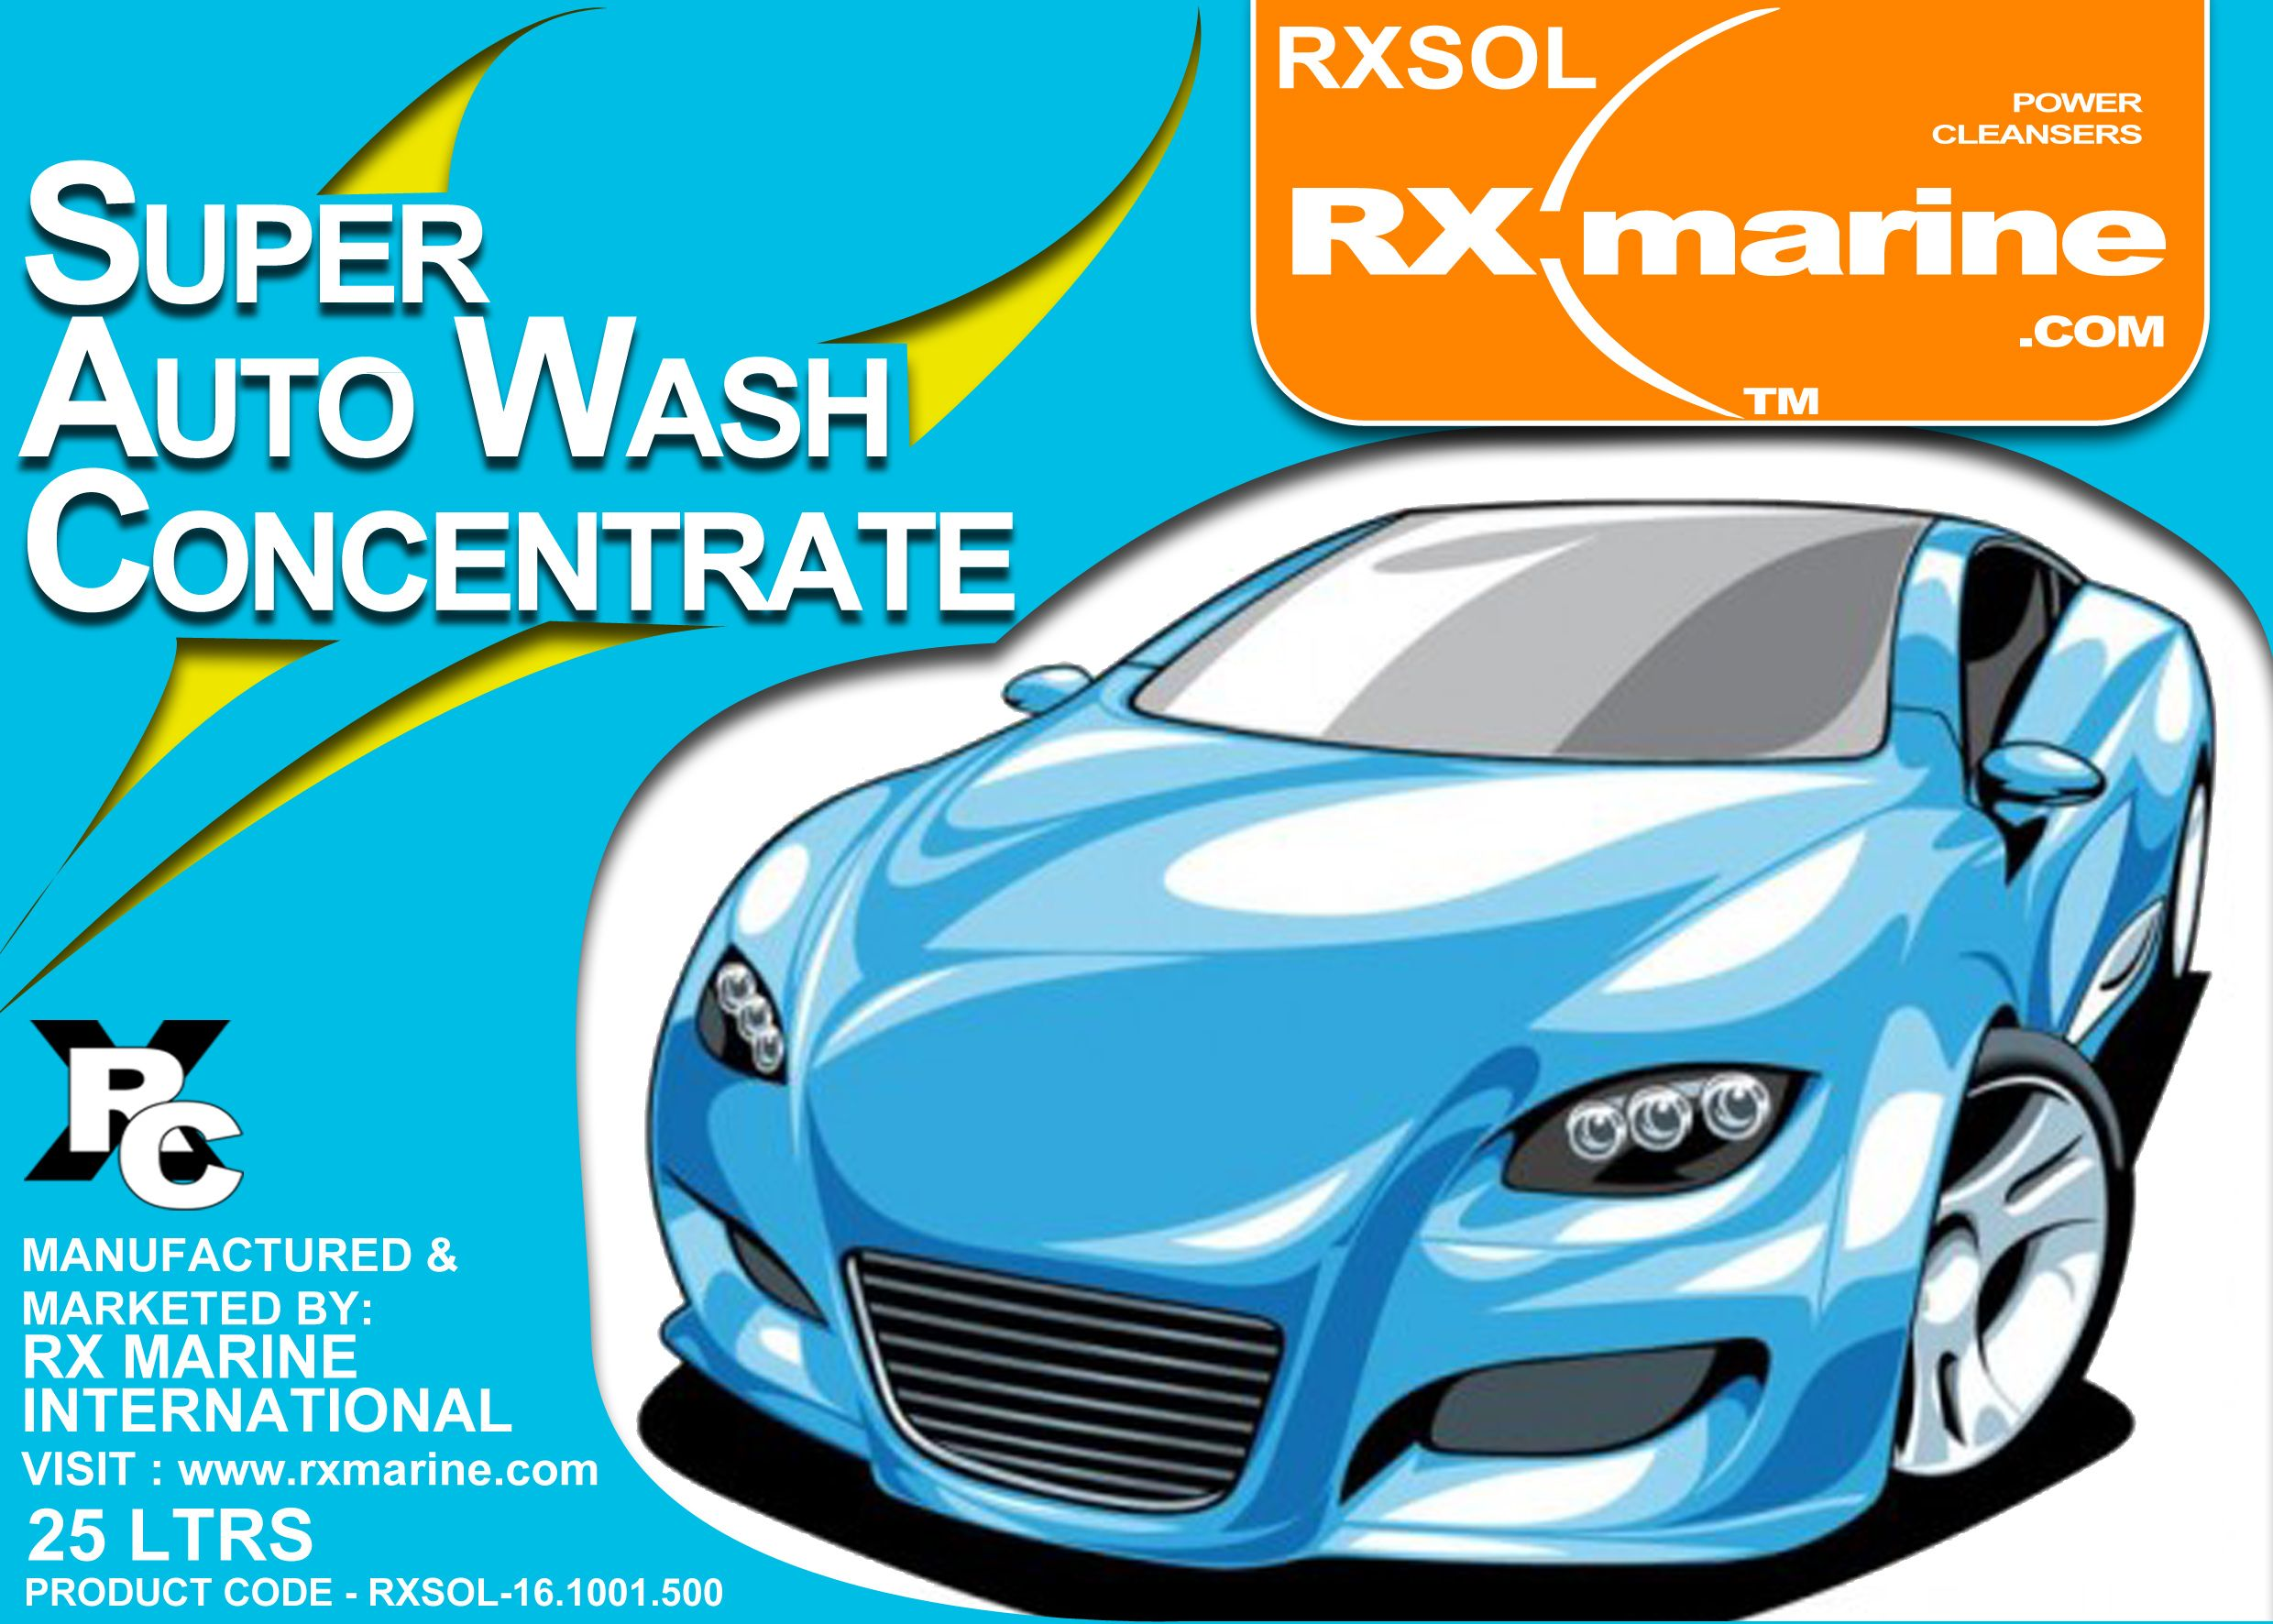 Ready For Some Pampering Scl Car Detailing 07754 605840 01733 685256 Car Detailing Car Bmw Car